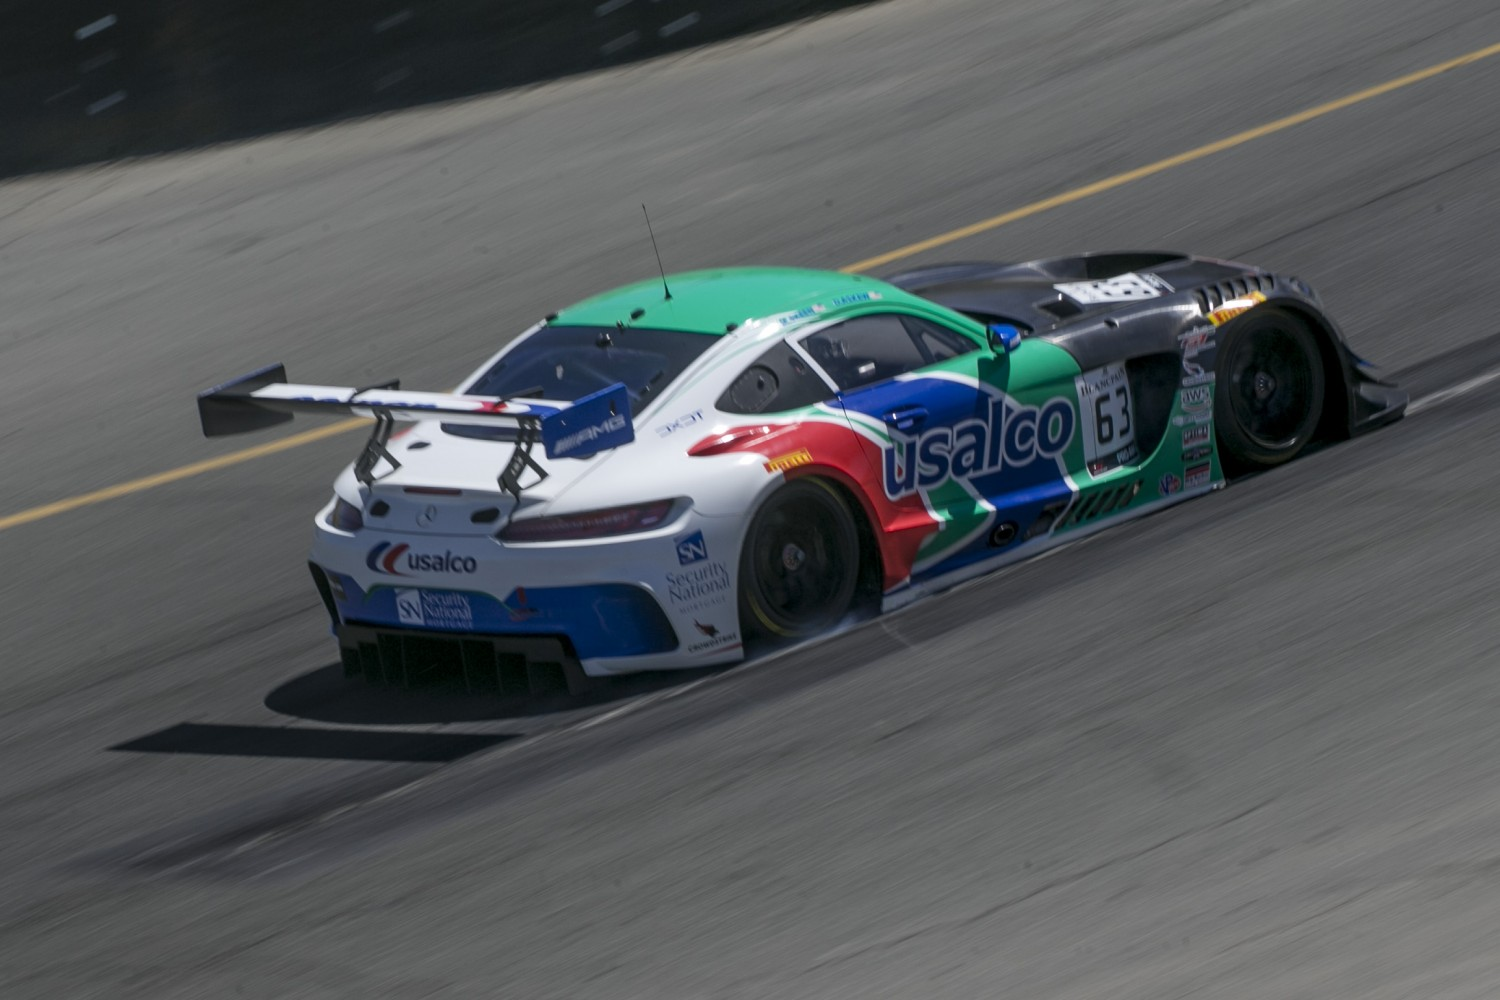 #63, DXDT Racing, Mercedes-AMG GT3, David Askew and Mike Skeen, USALCO, SRO at Sonoma Raceway, Sonoma CA  | Brian Cleary/SRO